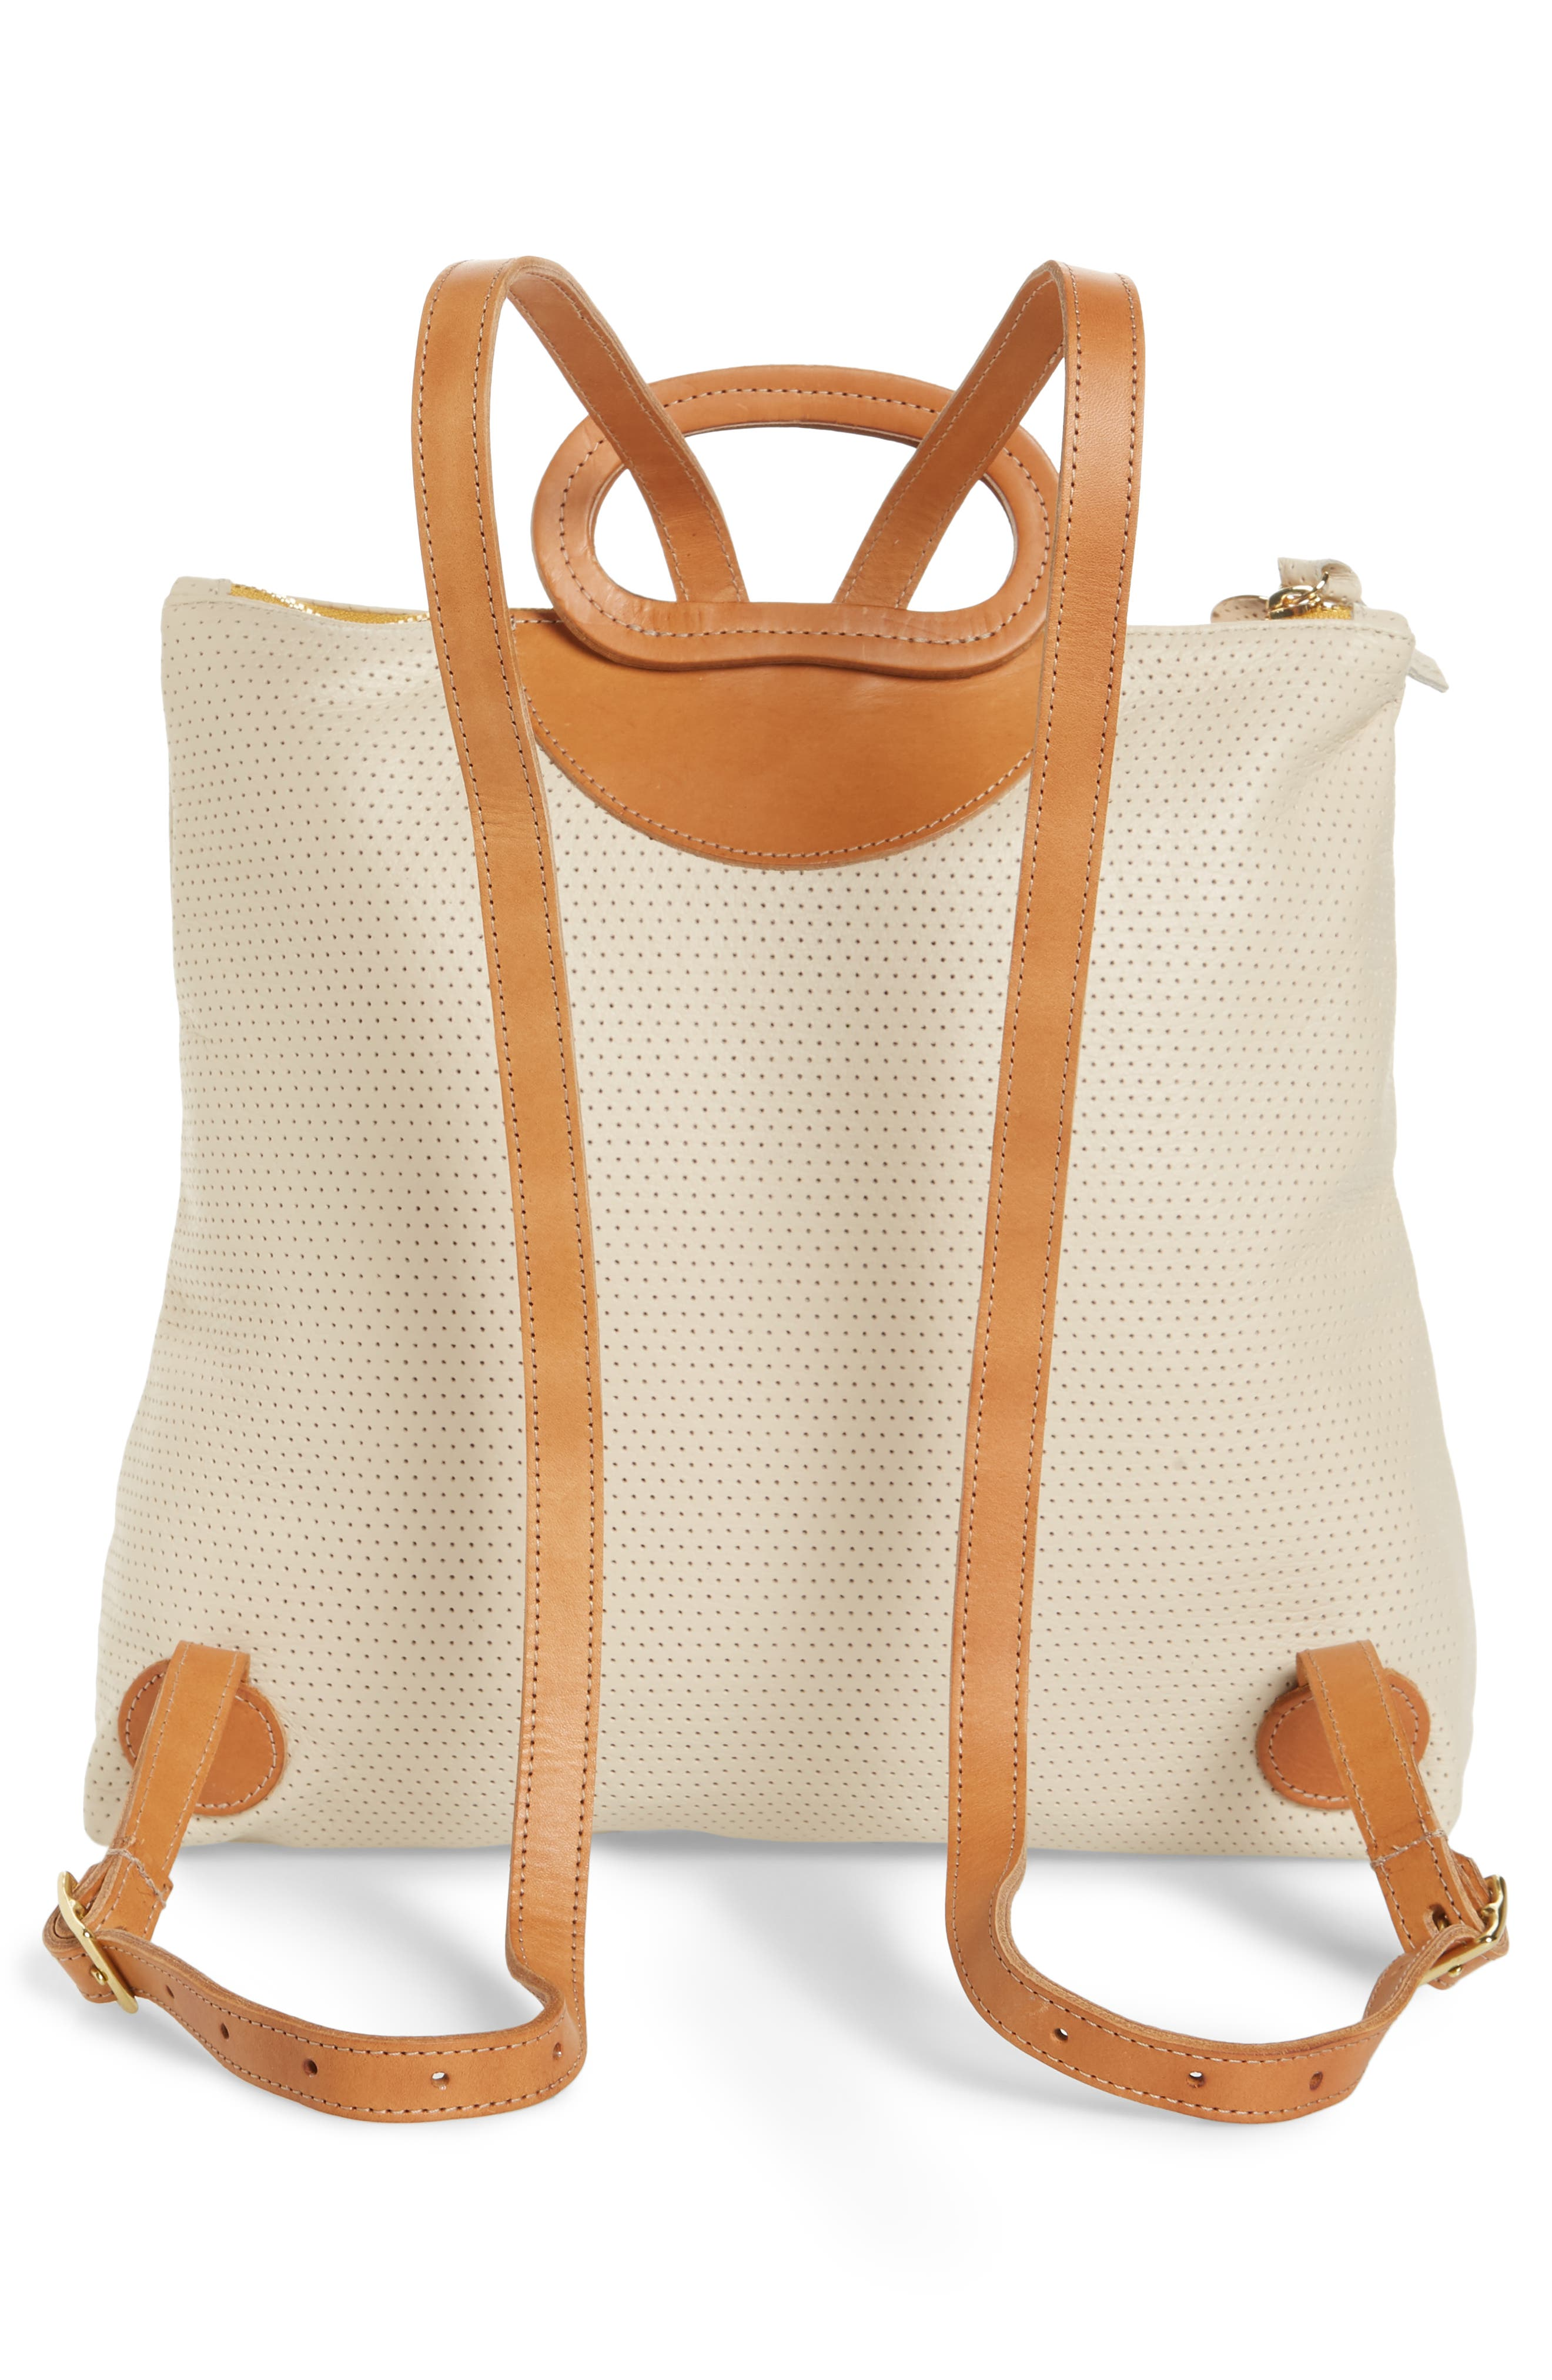 Marcelle Leather Backpack,                             Alternate thumbnail 3, color,                             Cream Micro Perf Stripe